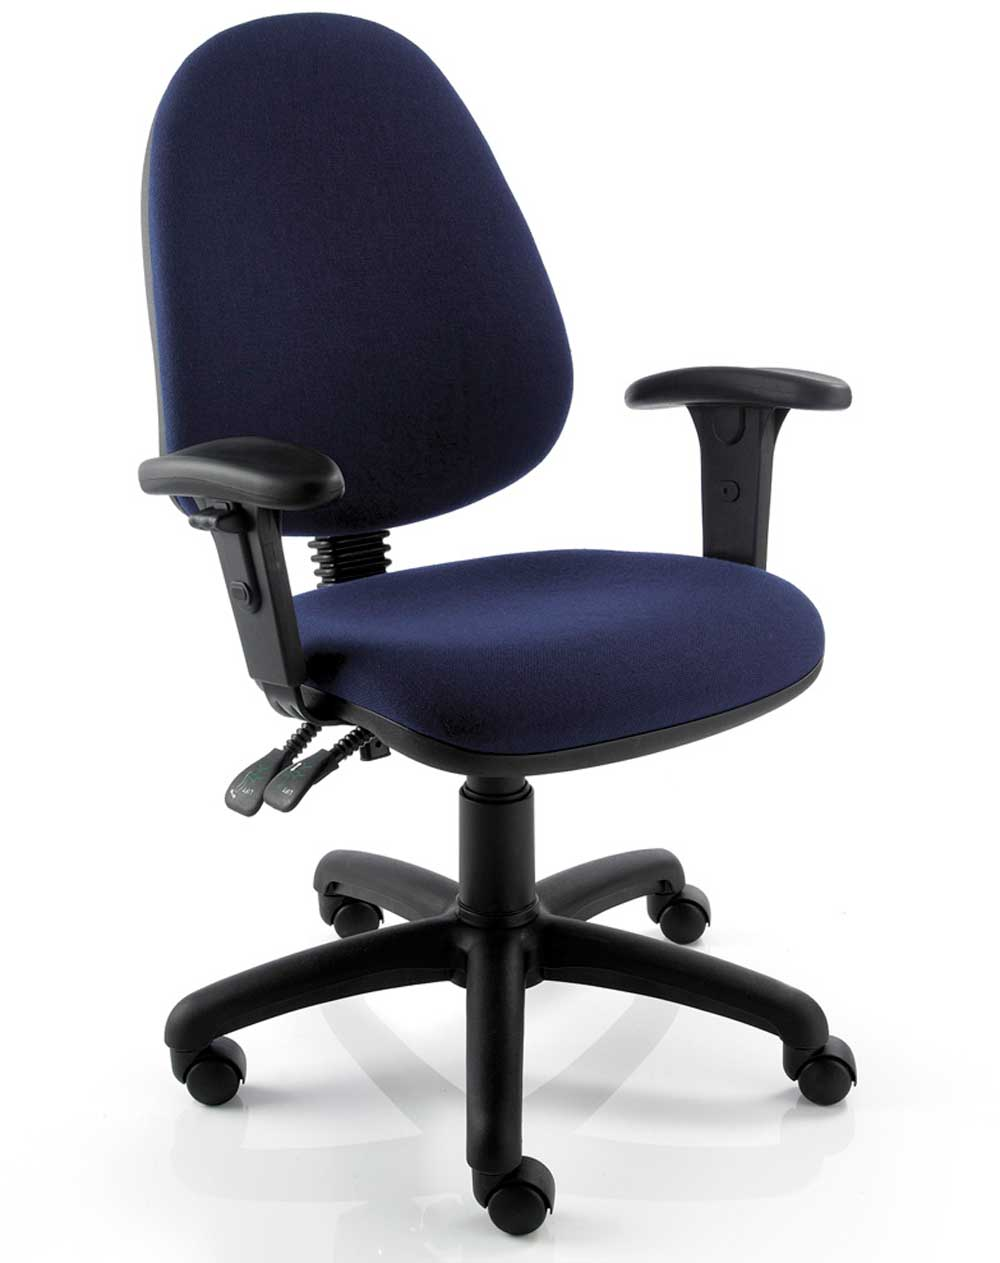 Cheap Office Chairs : cheap office chairs with arm from office-turn.com size 1000 x 1263 jpeg 43kB